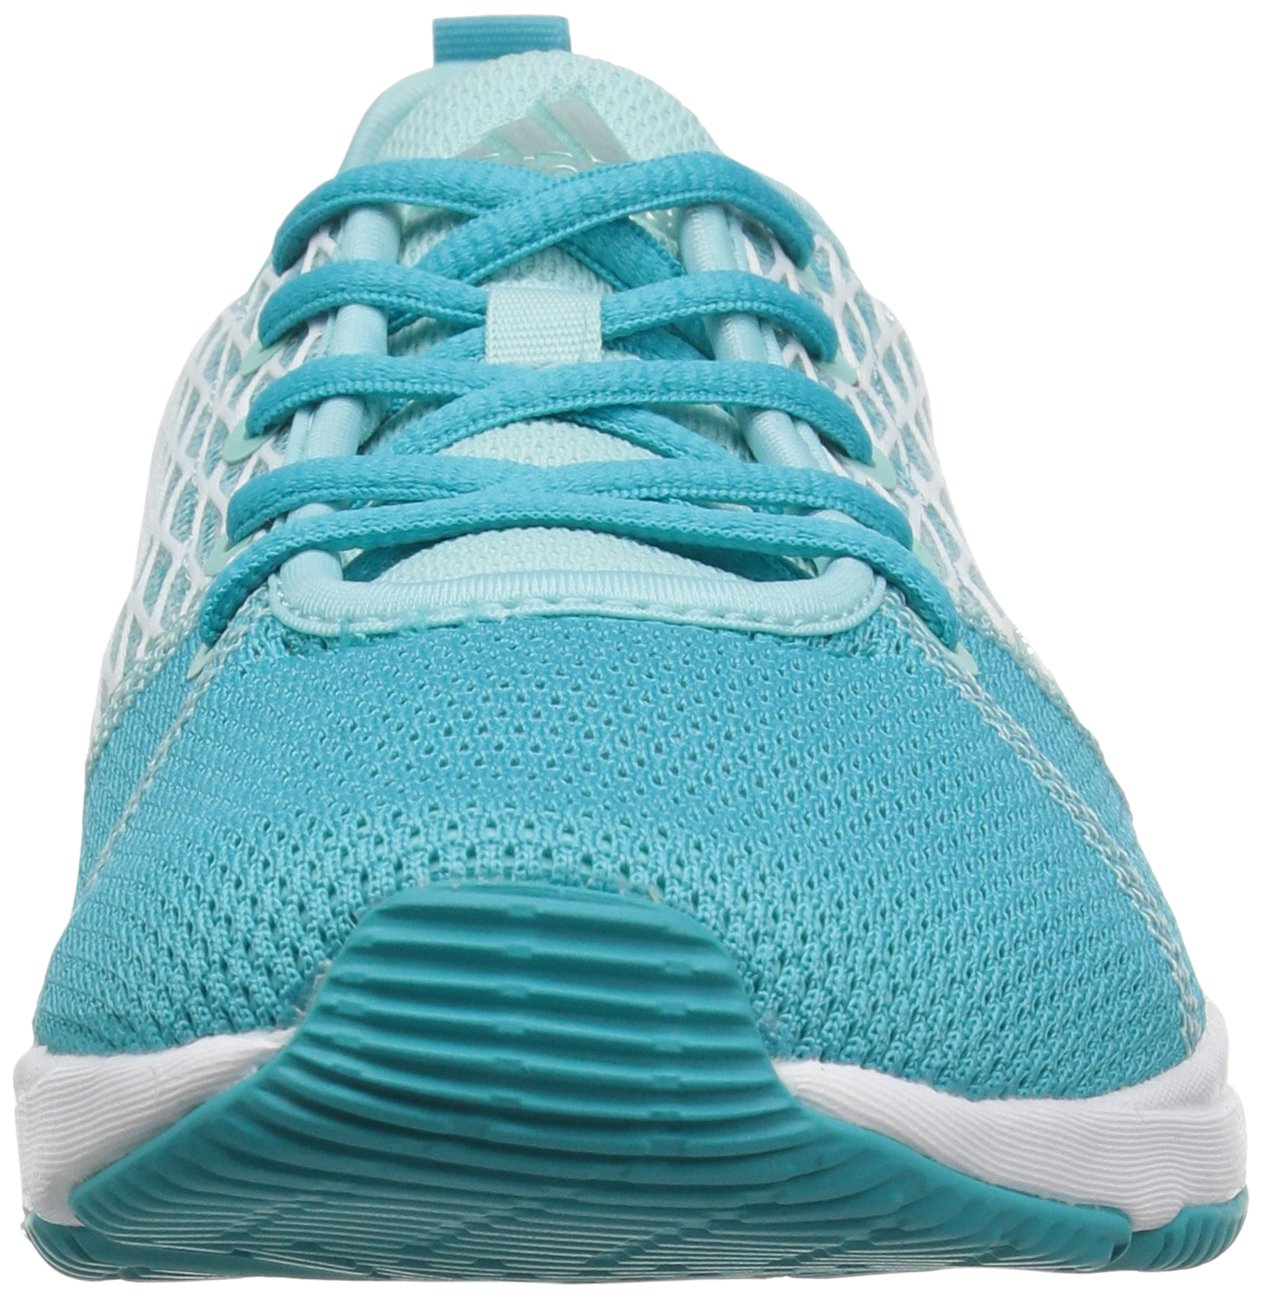 Adidas Shoes Cross Cloudfoam Mujer 19994 Adidas B01HHGDDJO s Arianna Cloudfoam Cross 942c834 - rogvitaminer.website